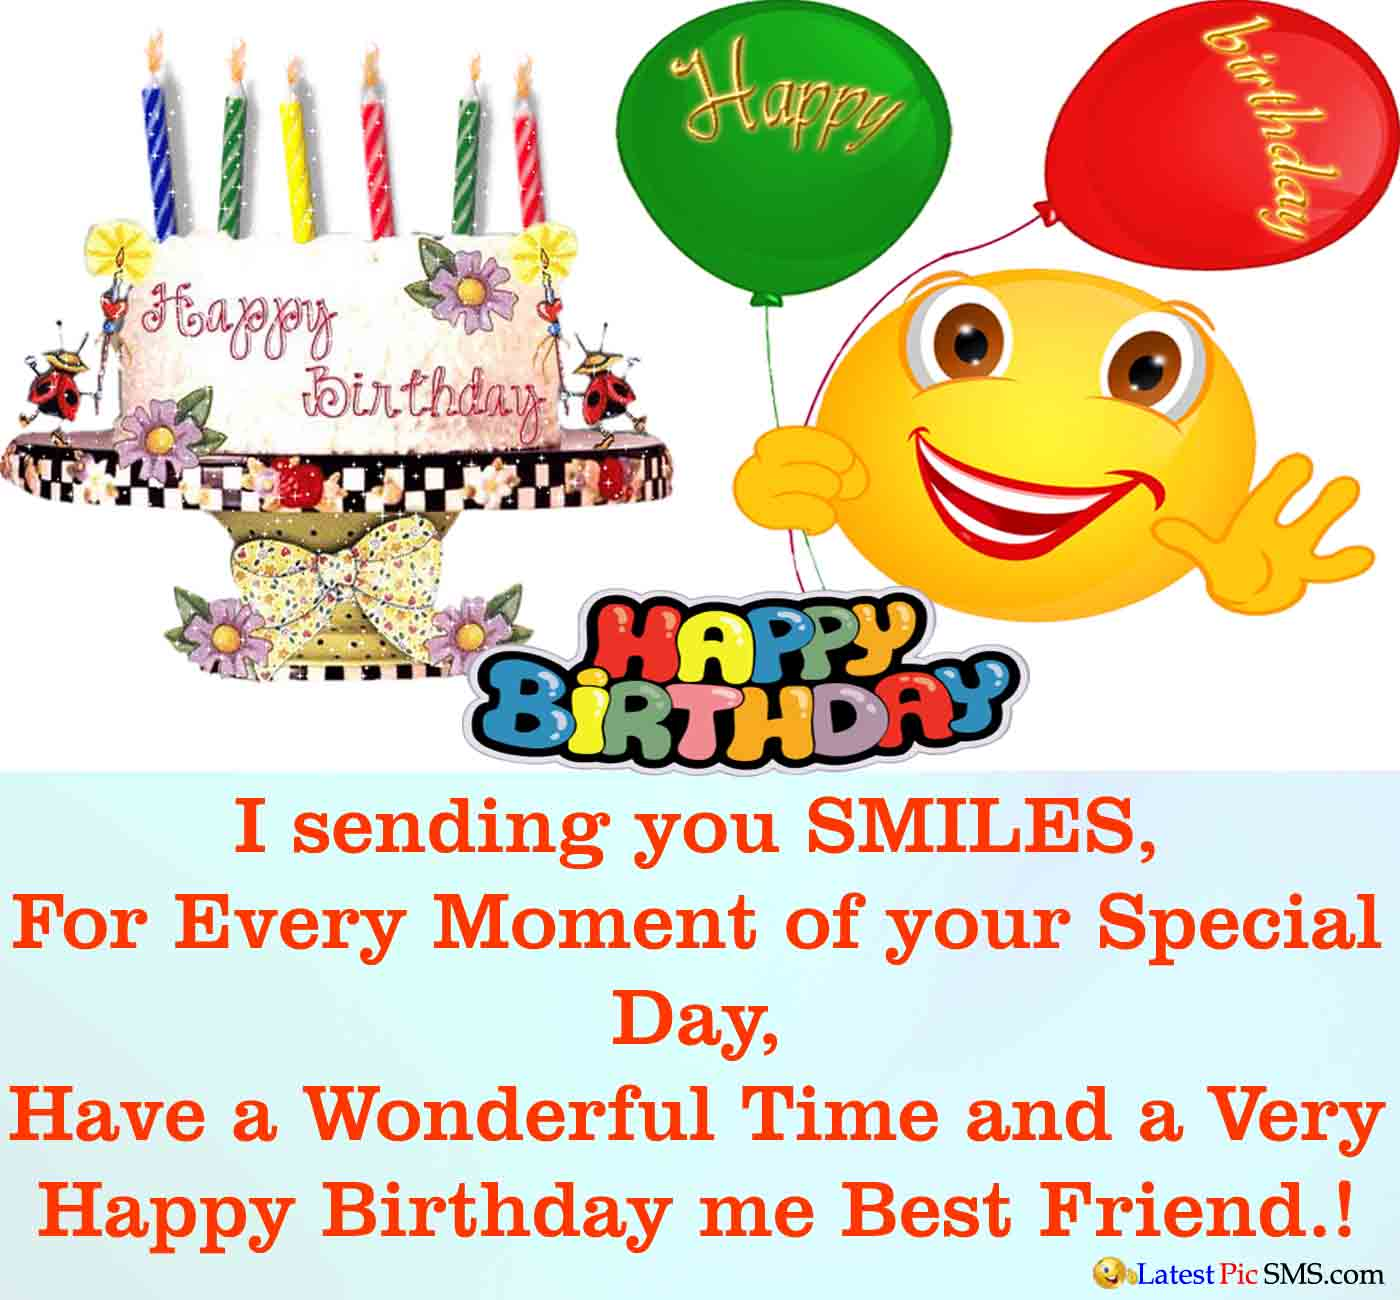 Happy Birthday Wishes For Best Friend Latest Picture Sms